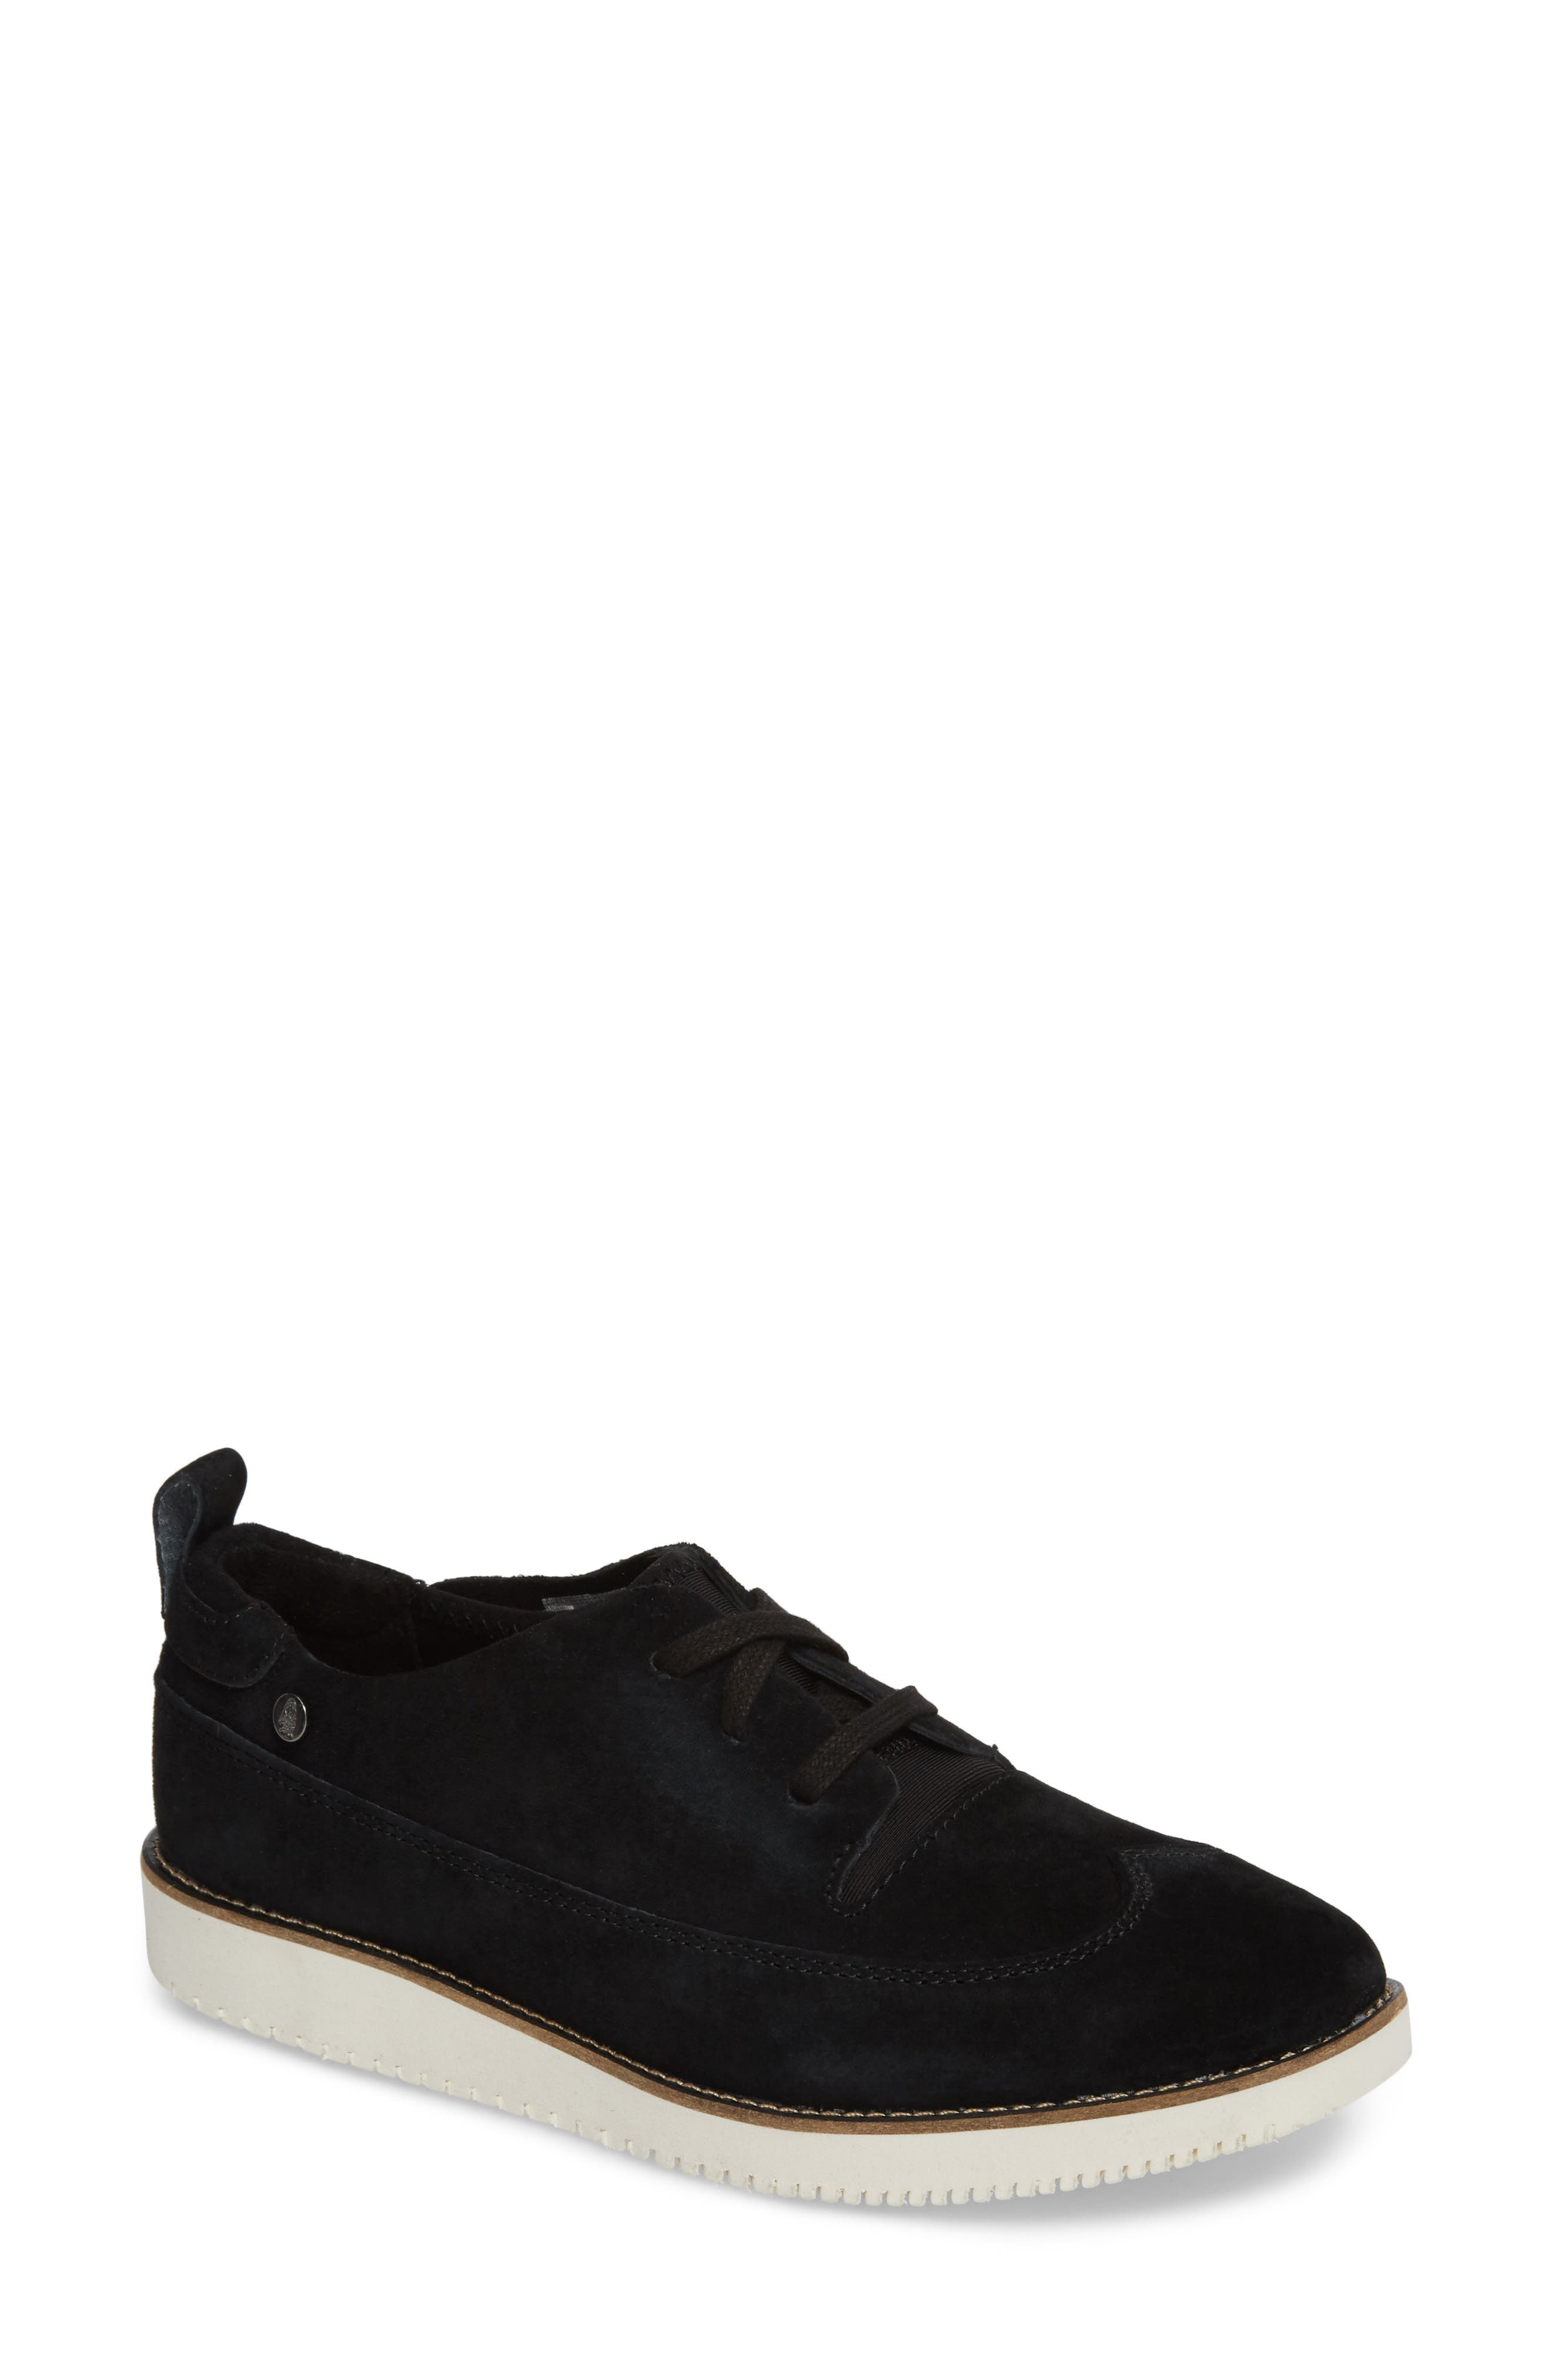 Chowchow Oxford,                         Main,                         color, BLACK SUEDE